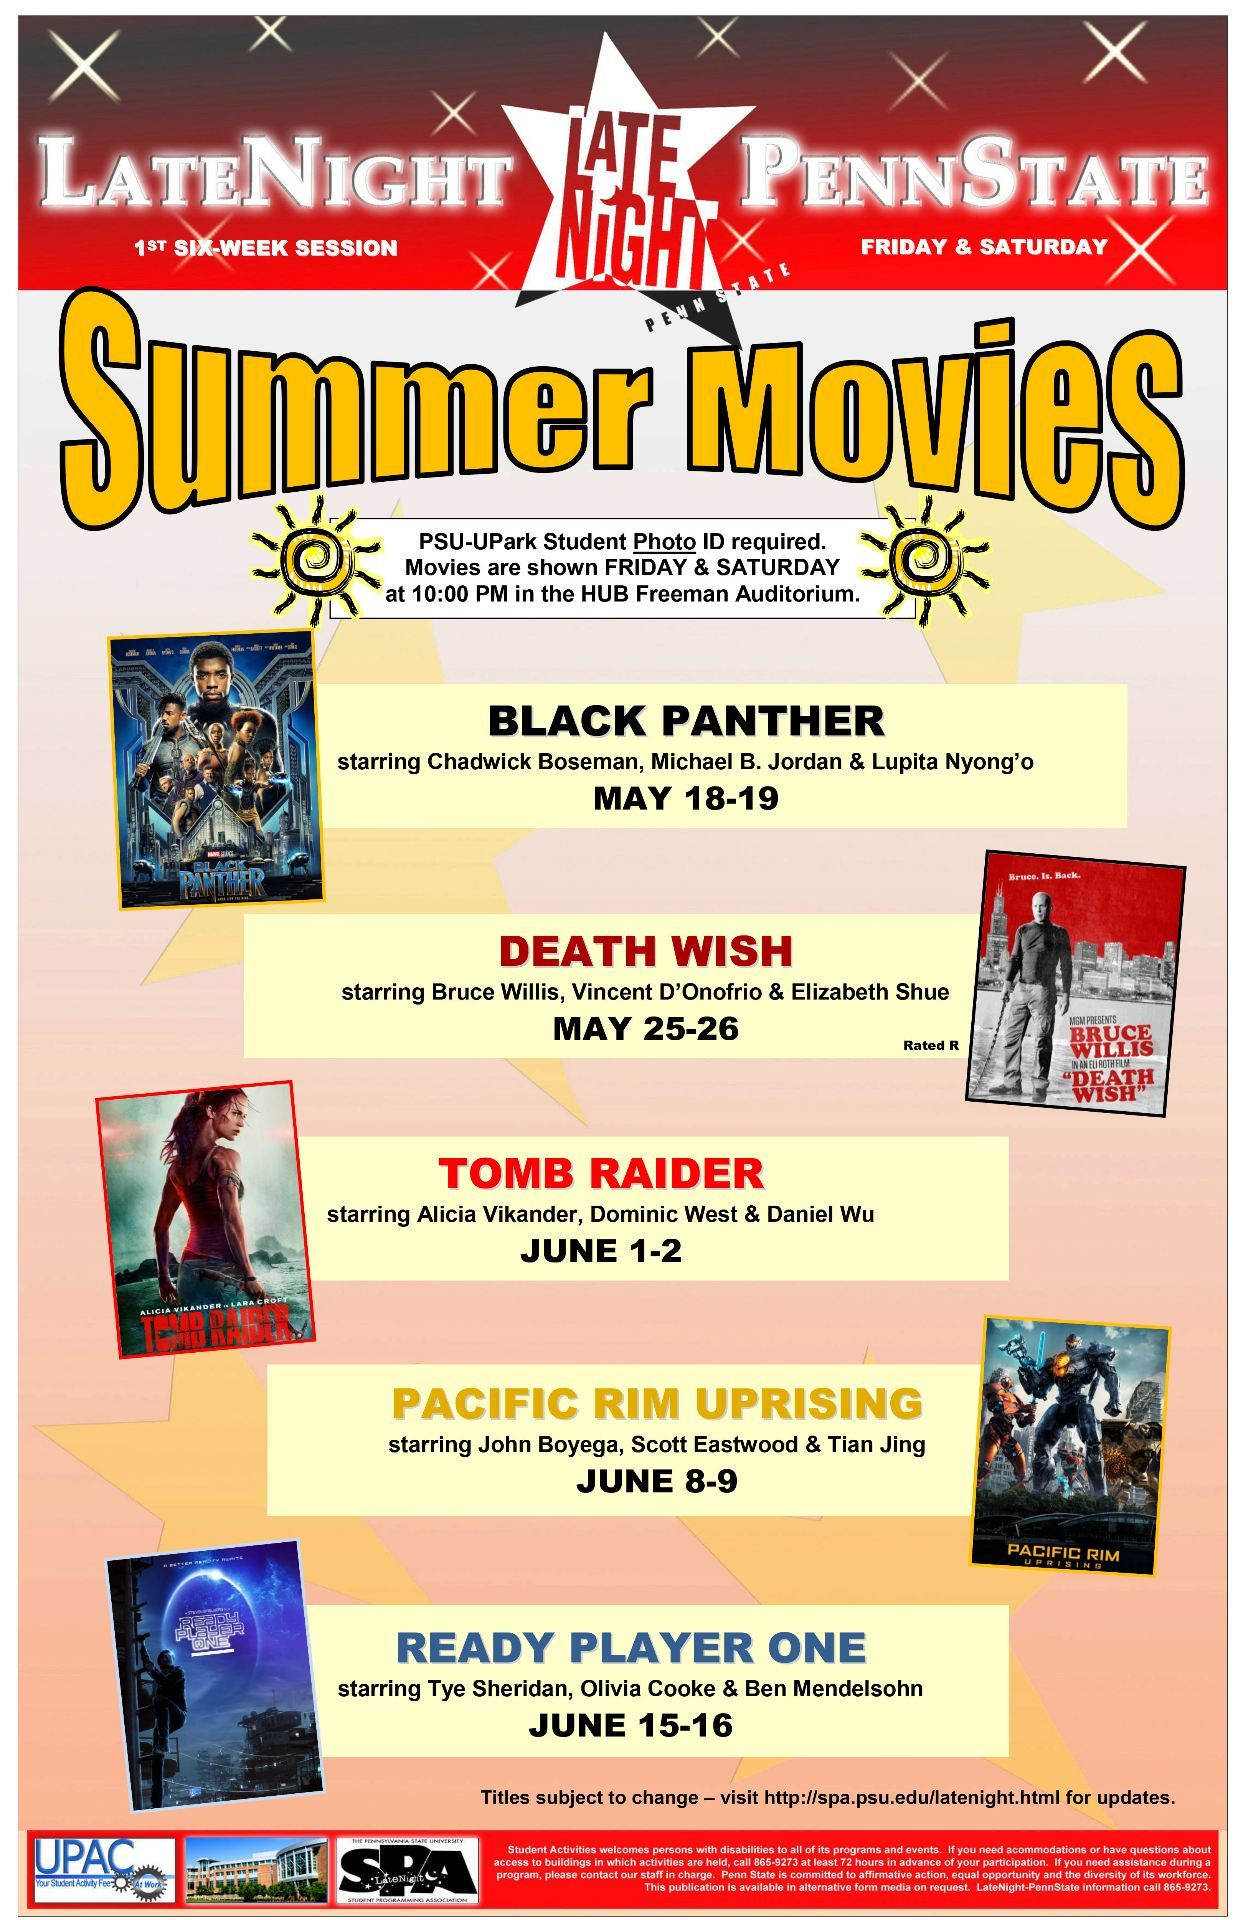 PSU-UPark Student Photo ID required. Movies are shown FRIDAY & SATURDAY at 10:00 PM in the HUB Freeman Auditorium. BLACK PANTHER starring Chadwick Boseman, Michael B. Jordan & Lupita Nyong'o MAY 18-19 DEATH WISH starring Bruce Willis, Vincent D'Onofrio & Elizabeth Shue MAY 25-26 TOMB RAIDER starring Alicia Vikander, Dominic West & Daniel Wu JUNE 1-2 PACIFIC RIM UPRISING starring John Boyega, Scott Eastwood & Tian Jing JUNE 8-9 READY PLAYER ONE starring Tye Sheridan, Olivia Cooke & Ben Mendelsohn JUNE 15-16